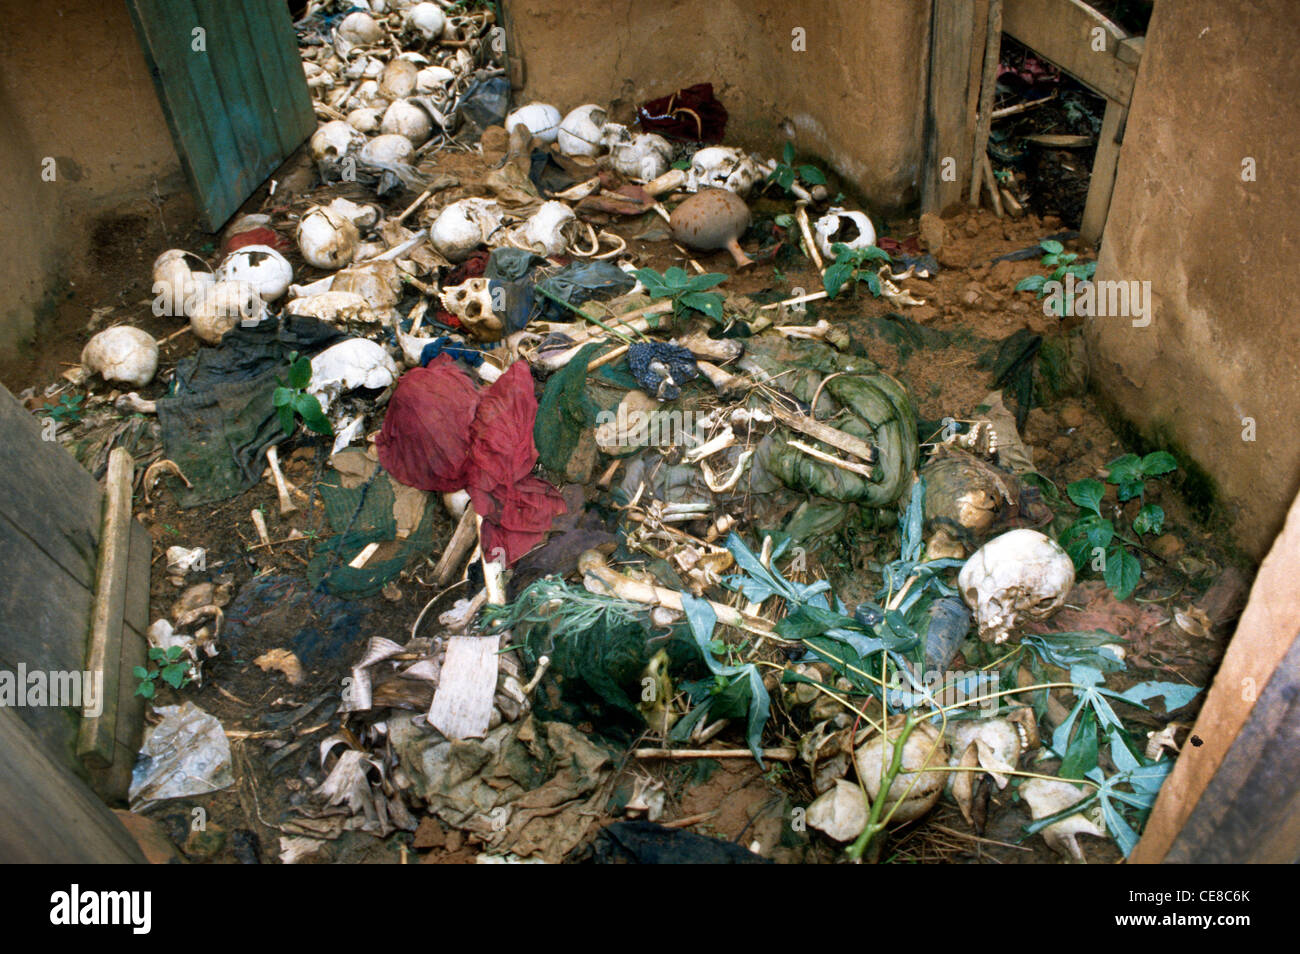 Bones and remains of victims in a massacre left in a house in Rwanda - Stock Image